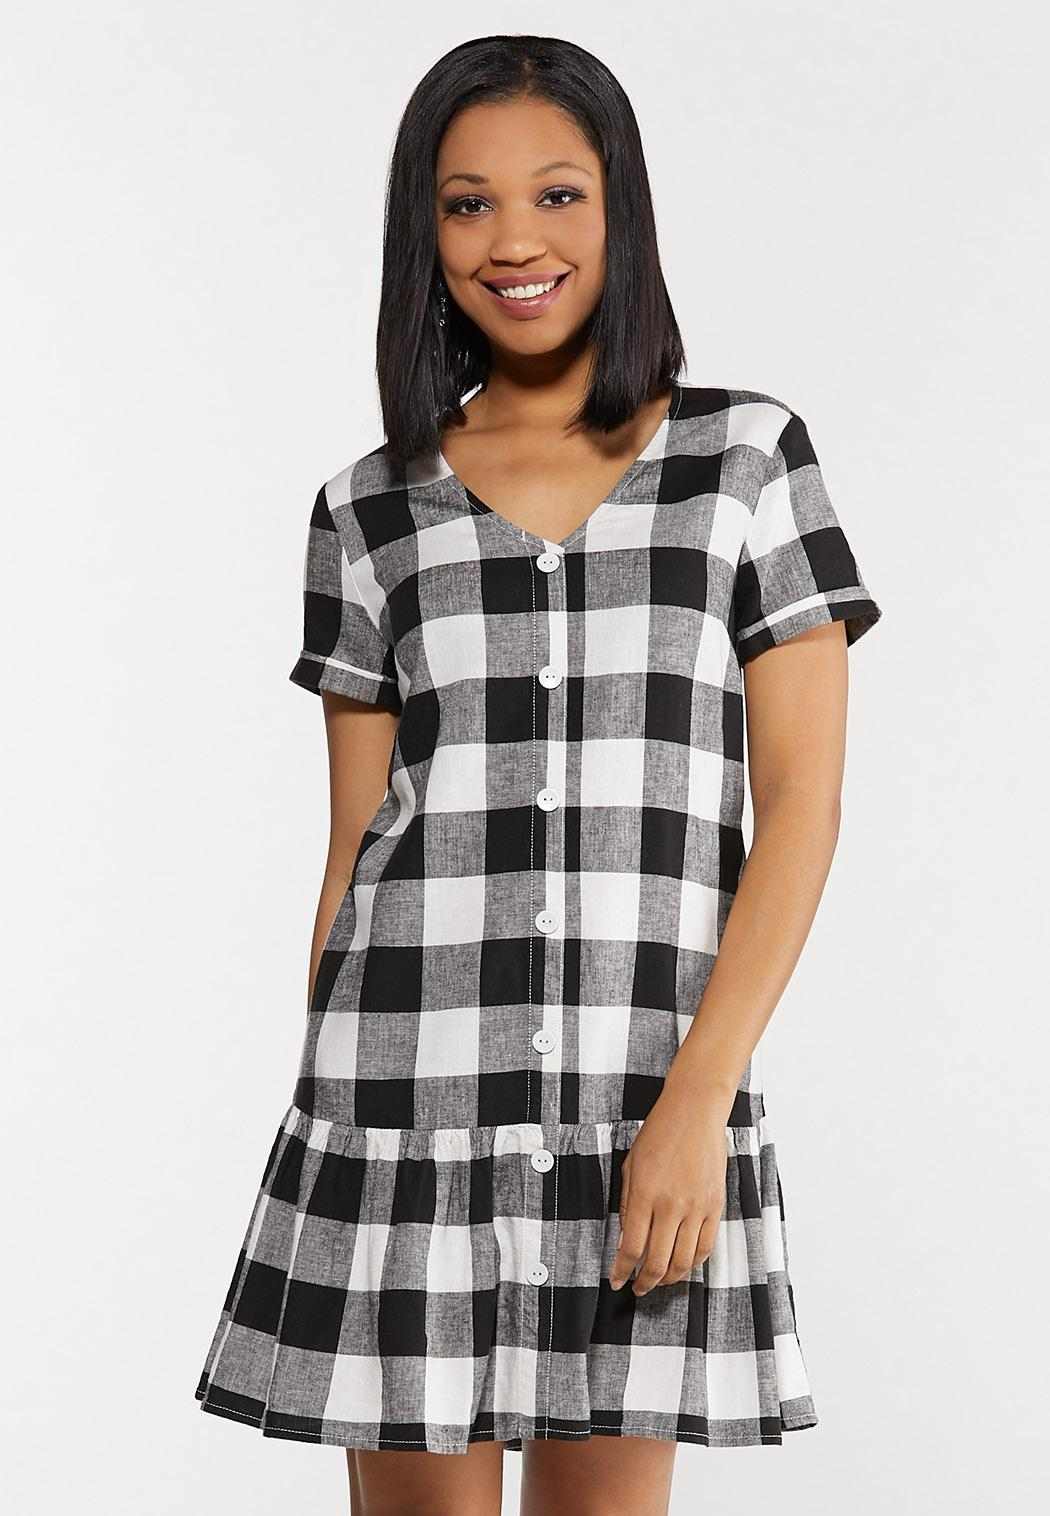 Plus Size Black And White Gingham Dress